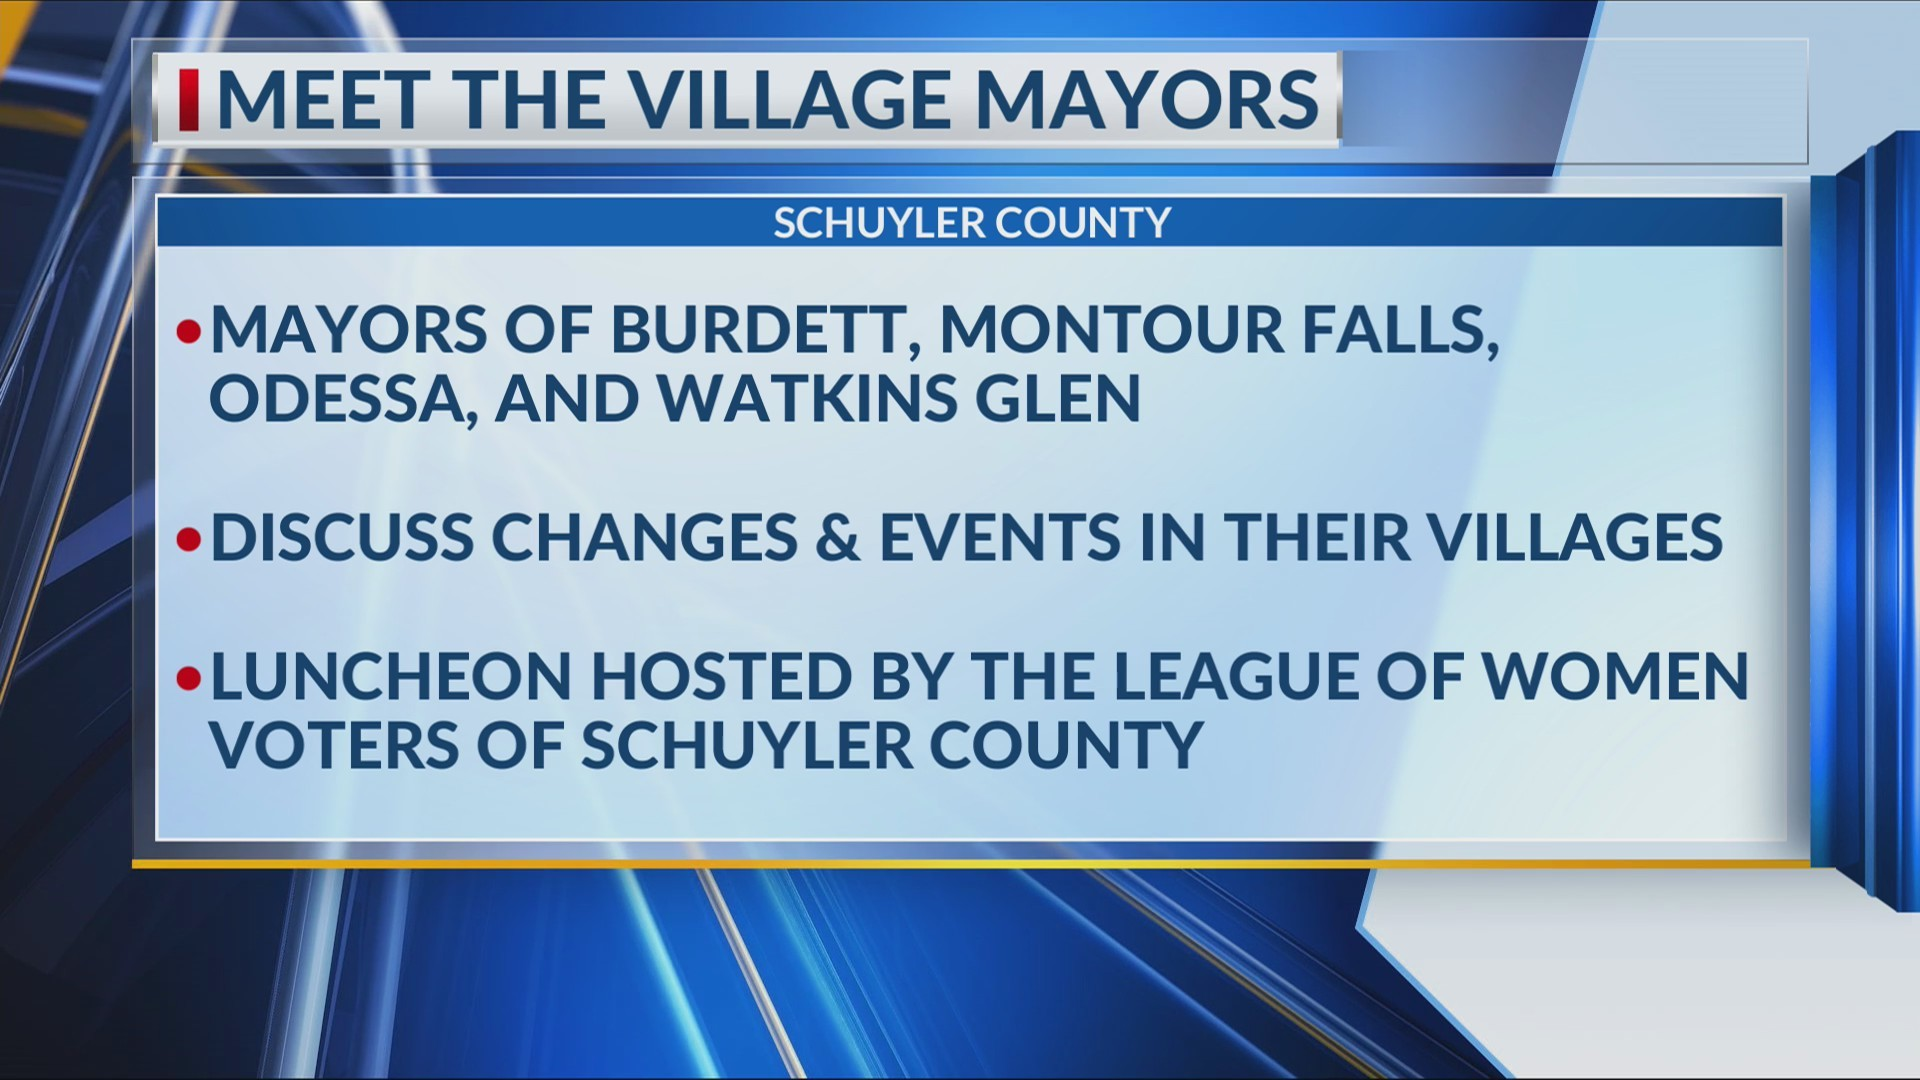 Meet the Mayors: Schuyler County Village mayors to discuss changes & events